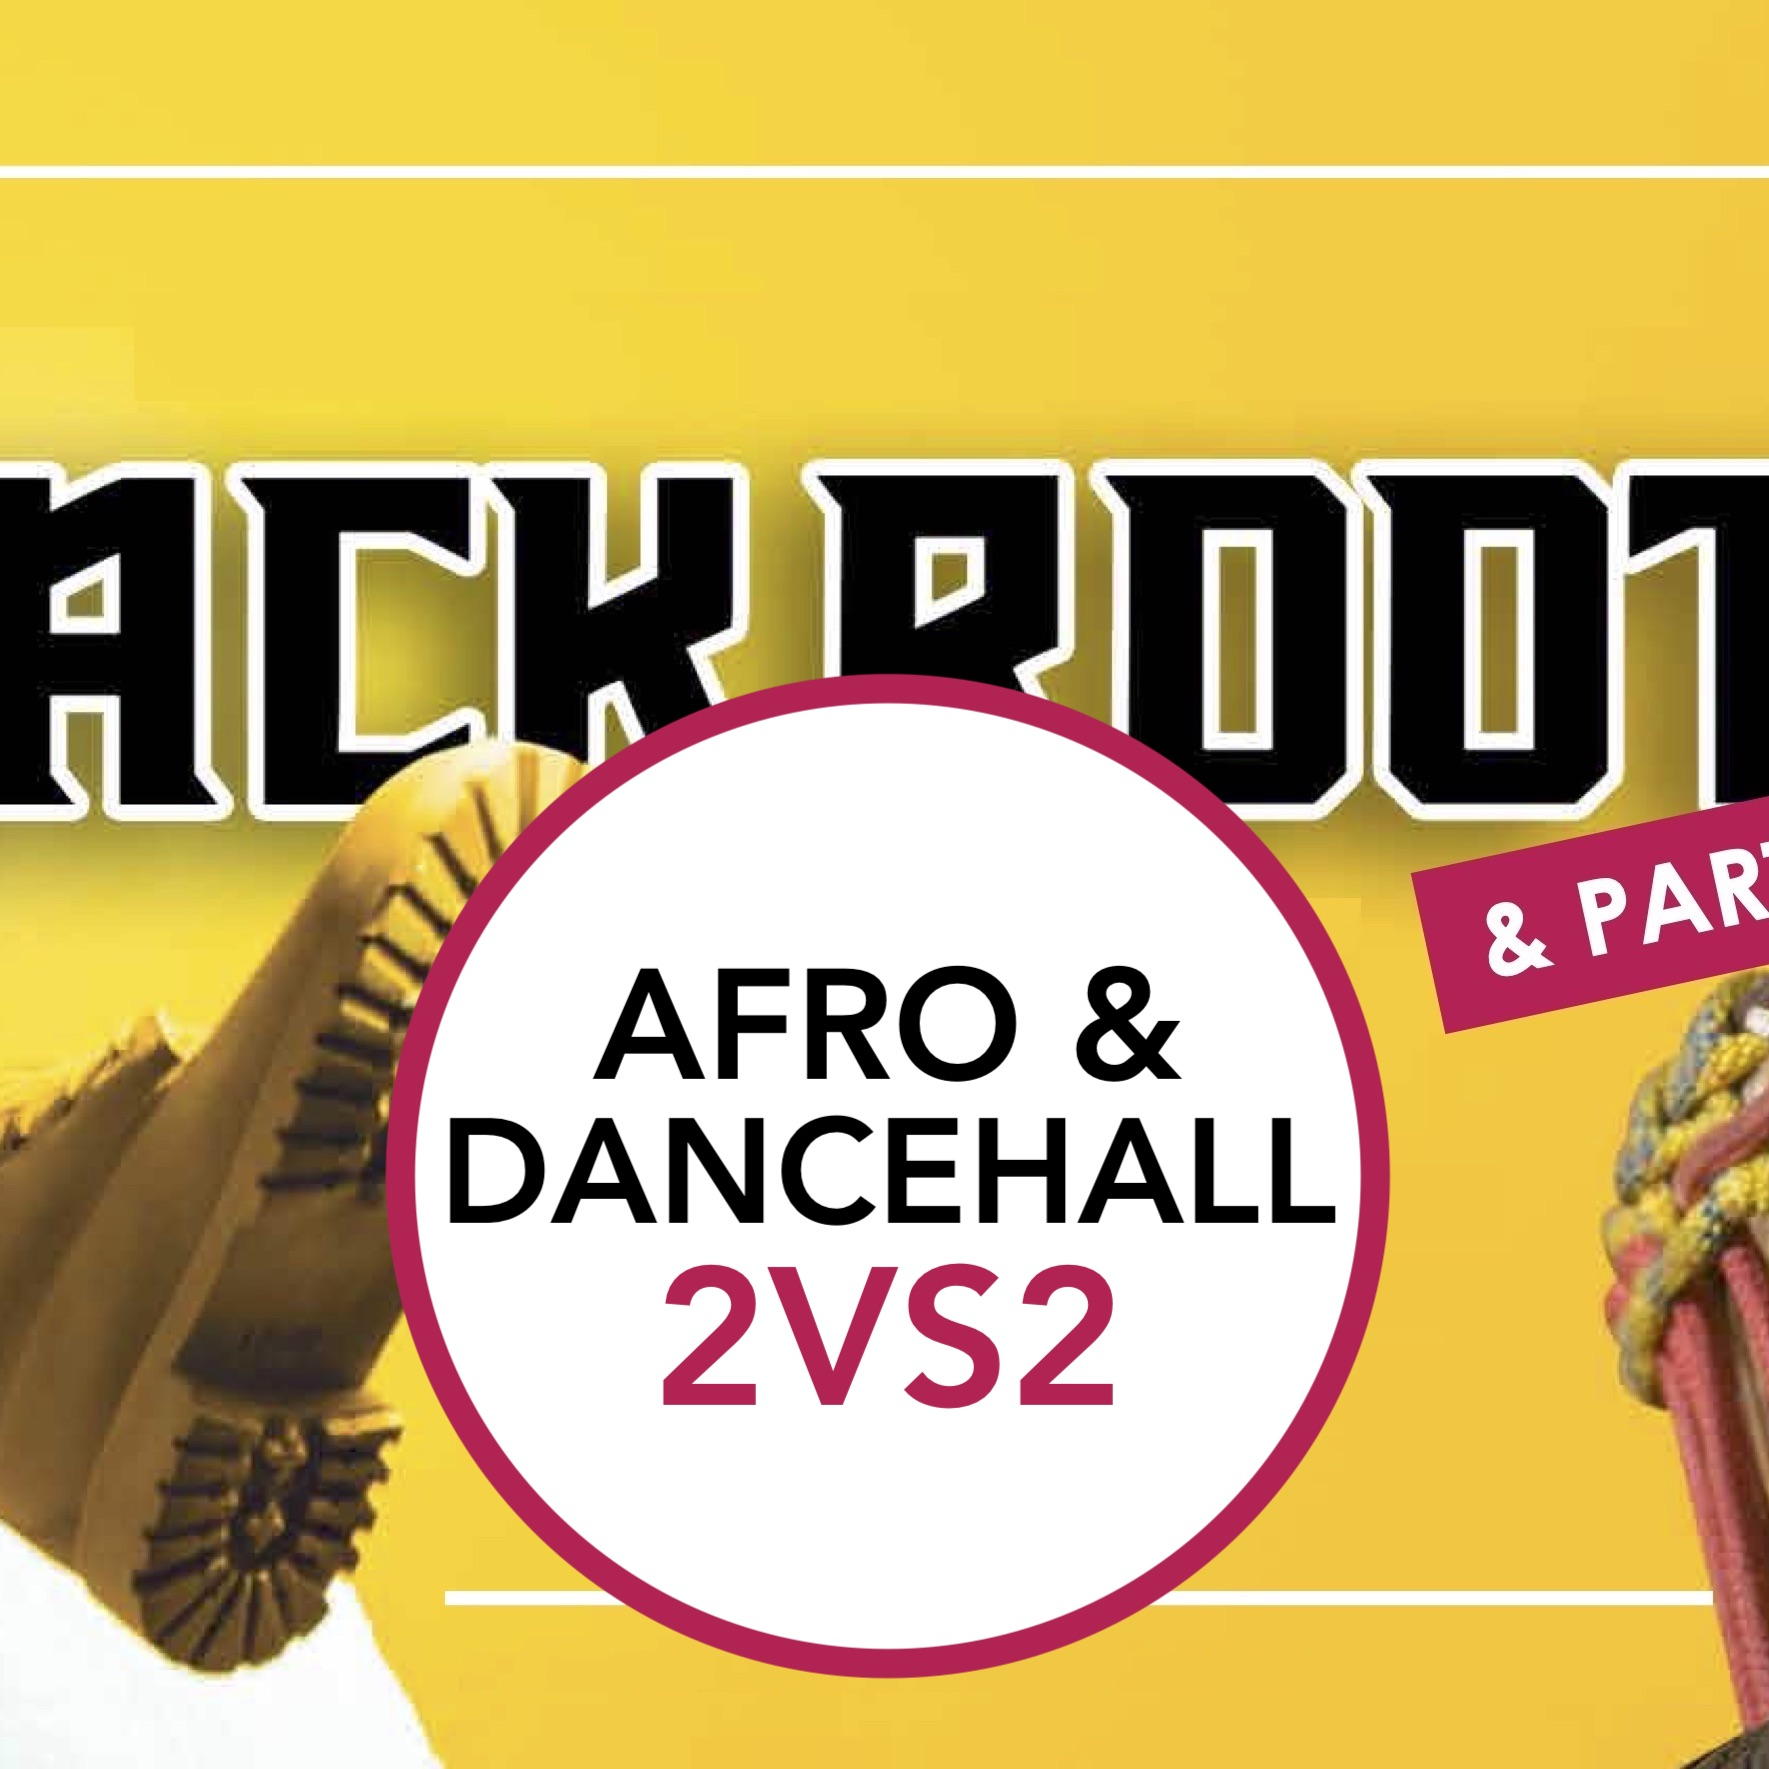 BlackRoots Afro Dancehall The Week The WeeKidz Street Dance Summer Camp Cesenatico Italy Workshop Stage Hip Hop Festival